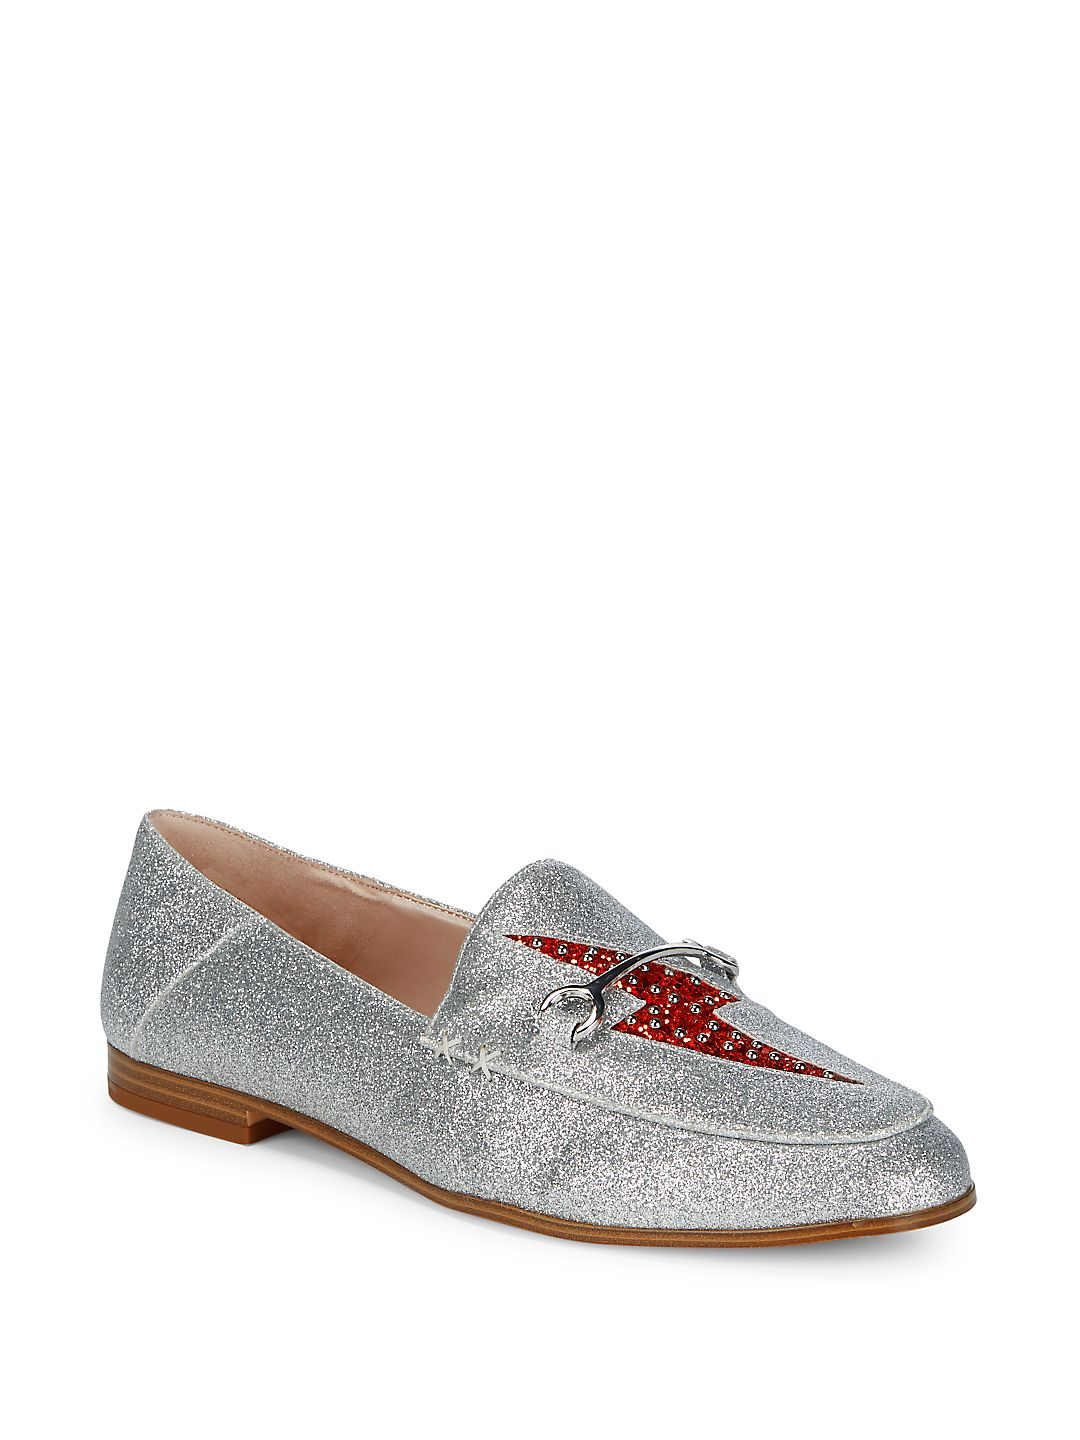 Wild Girls Glitter Loafer